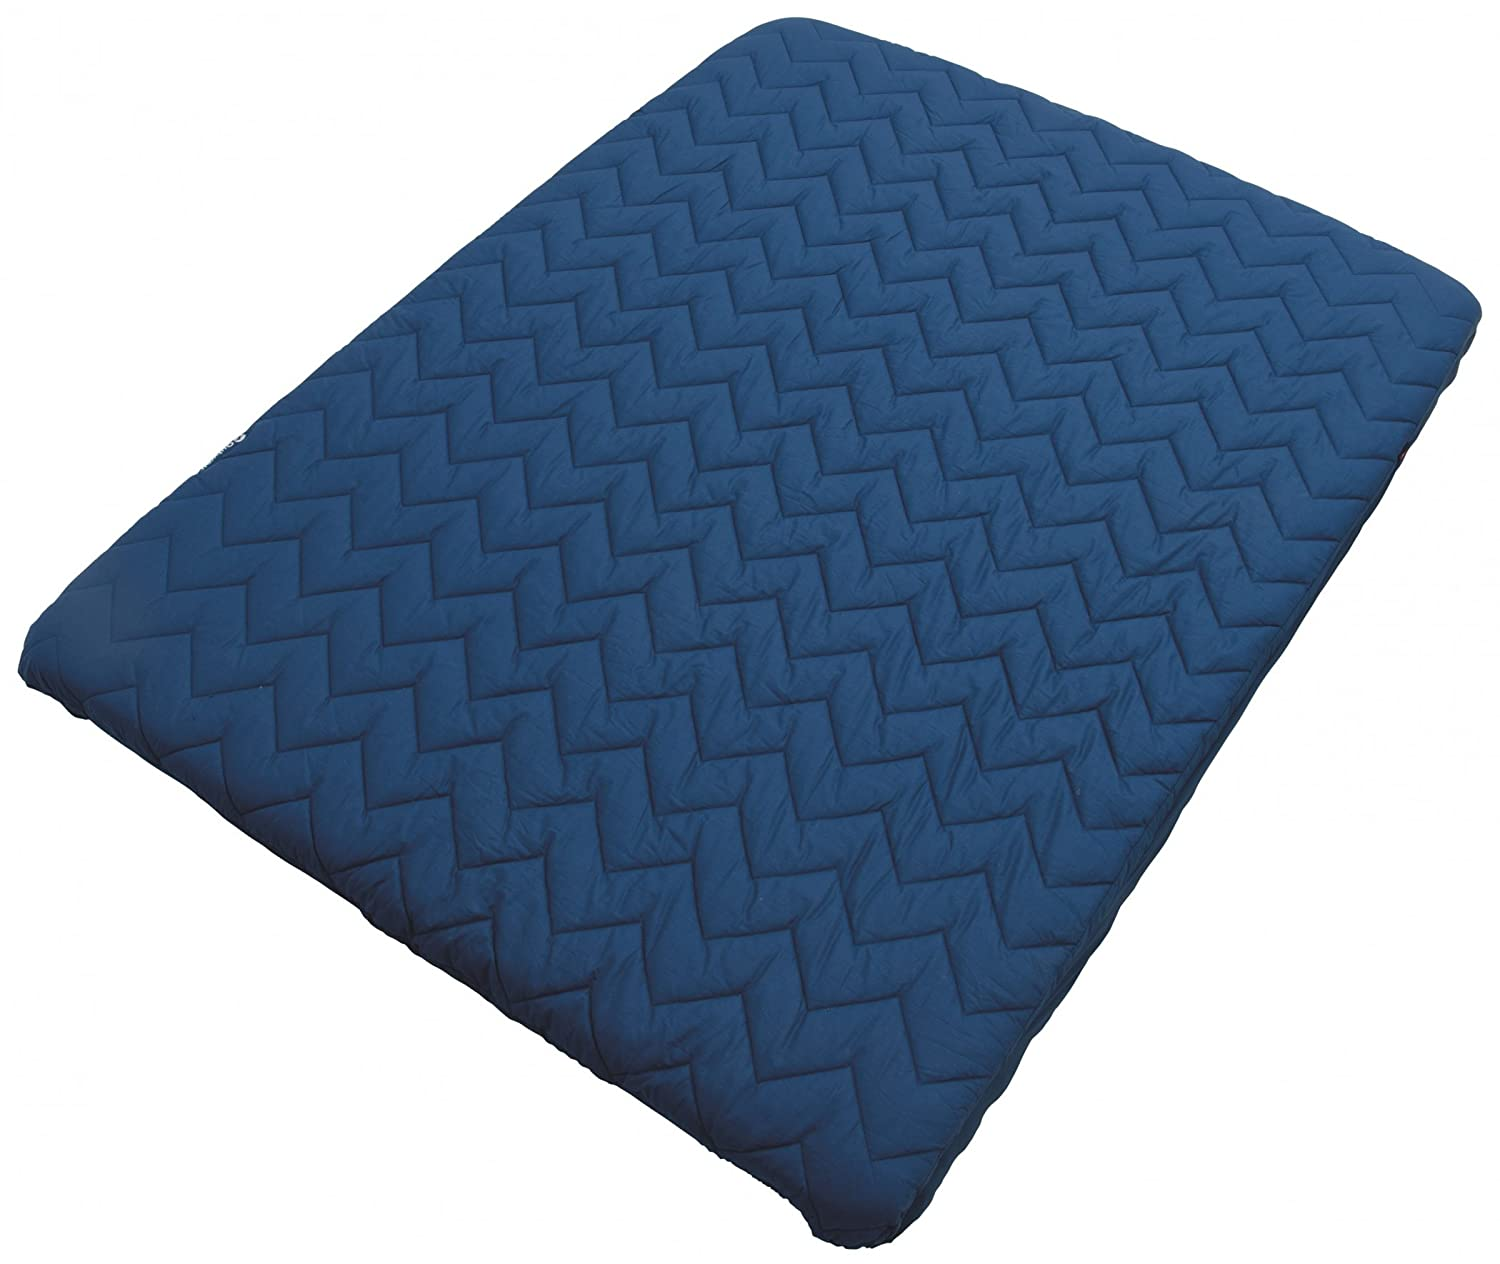 Outwell Cubitura Double blau; 195 x 135 x 12 cm